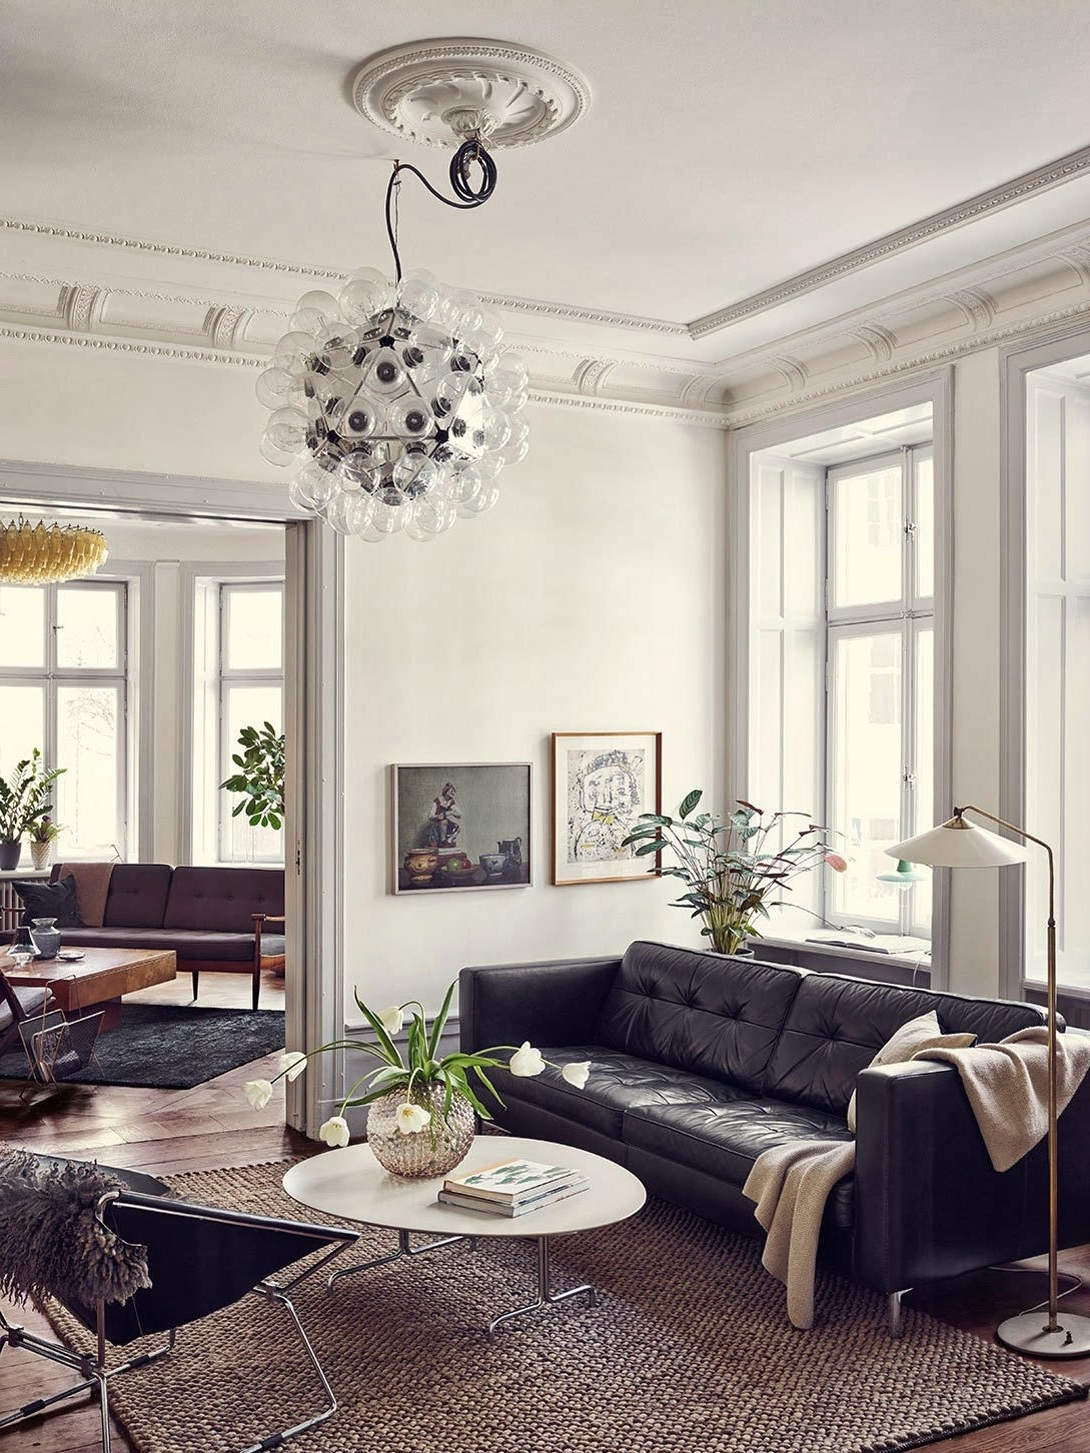 5 Amazing Black Leather Sofas For Your Luxury Living Room Living Room Decorating Black Leather Couch